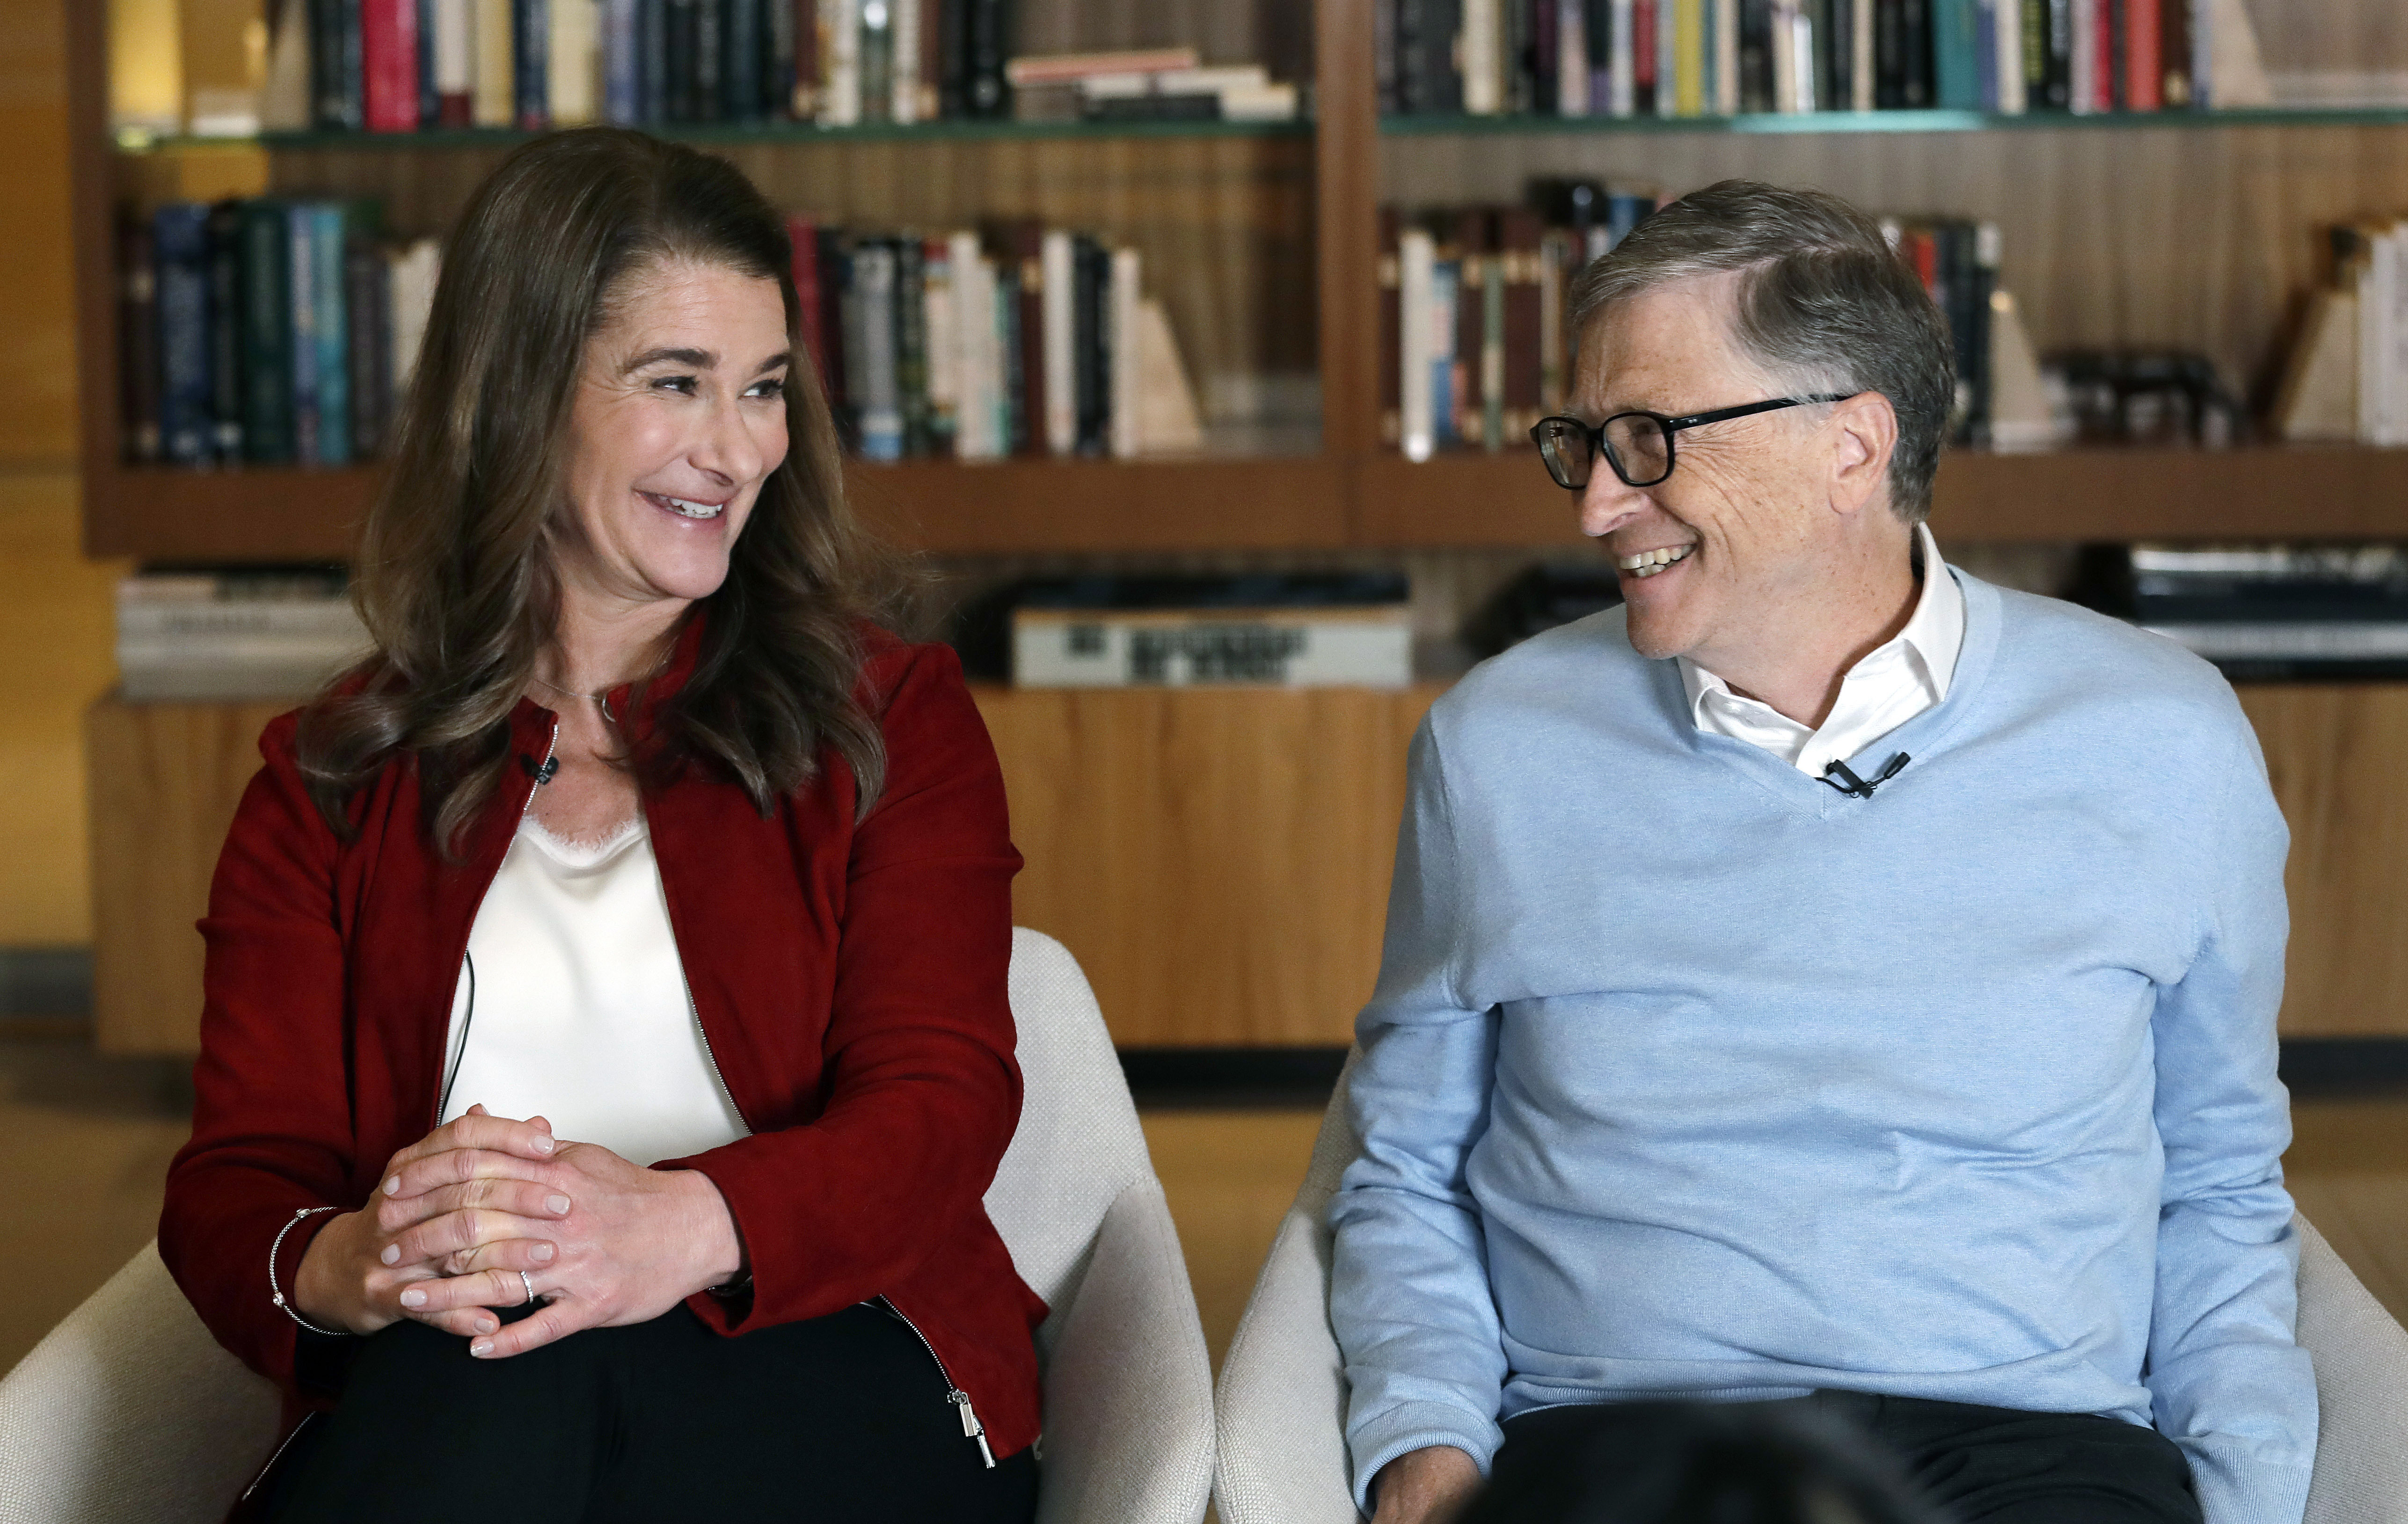 Bill and Melinda Gates smile at each other during an interview in Kirkland, Wash., on Feb. 1 2019.